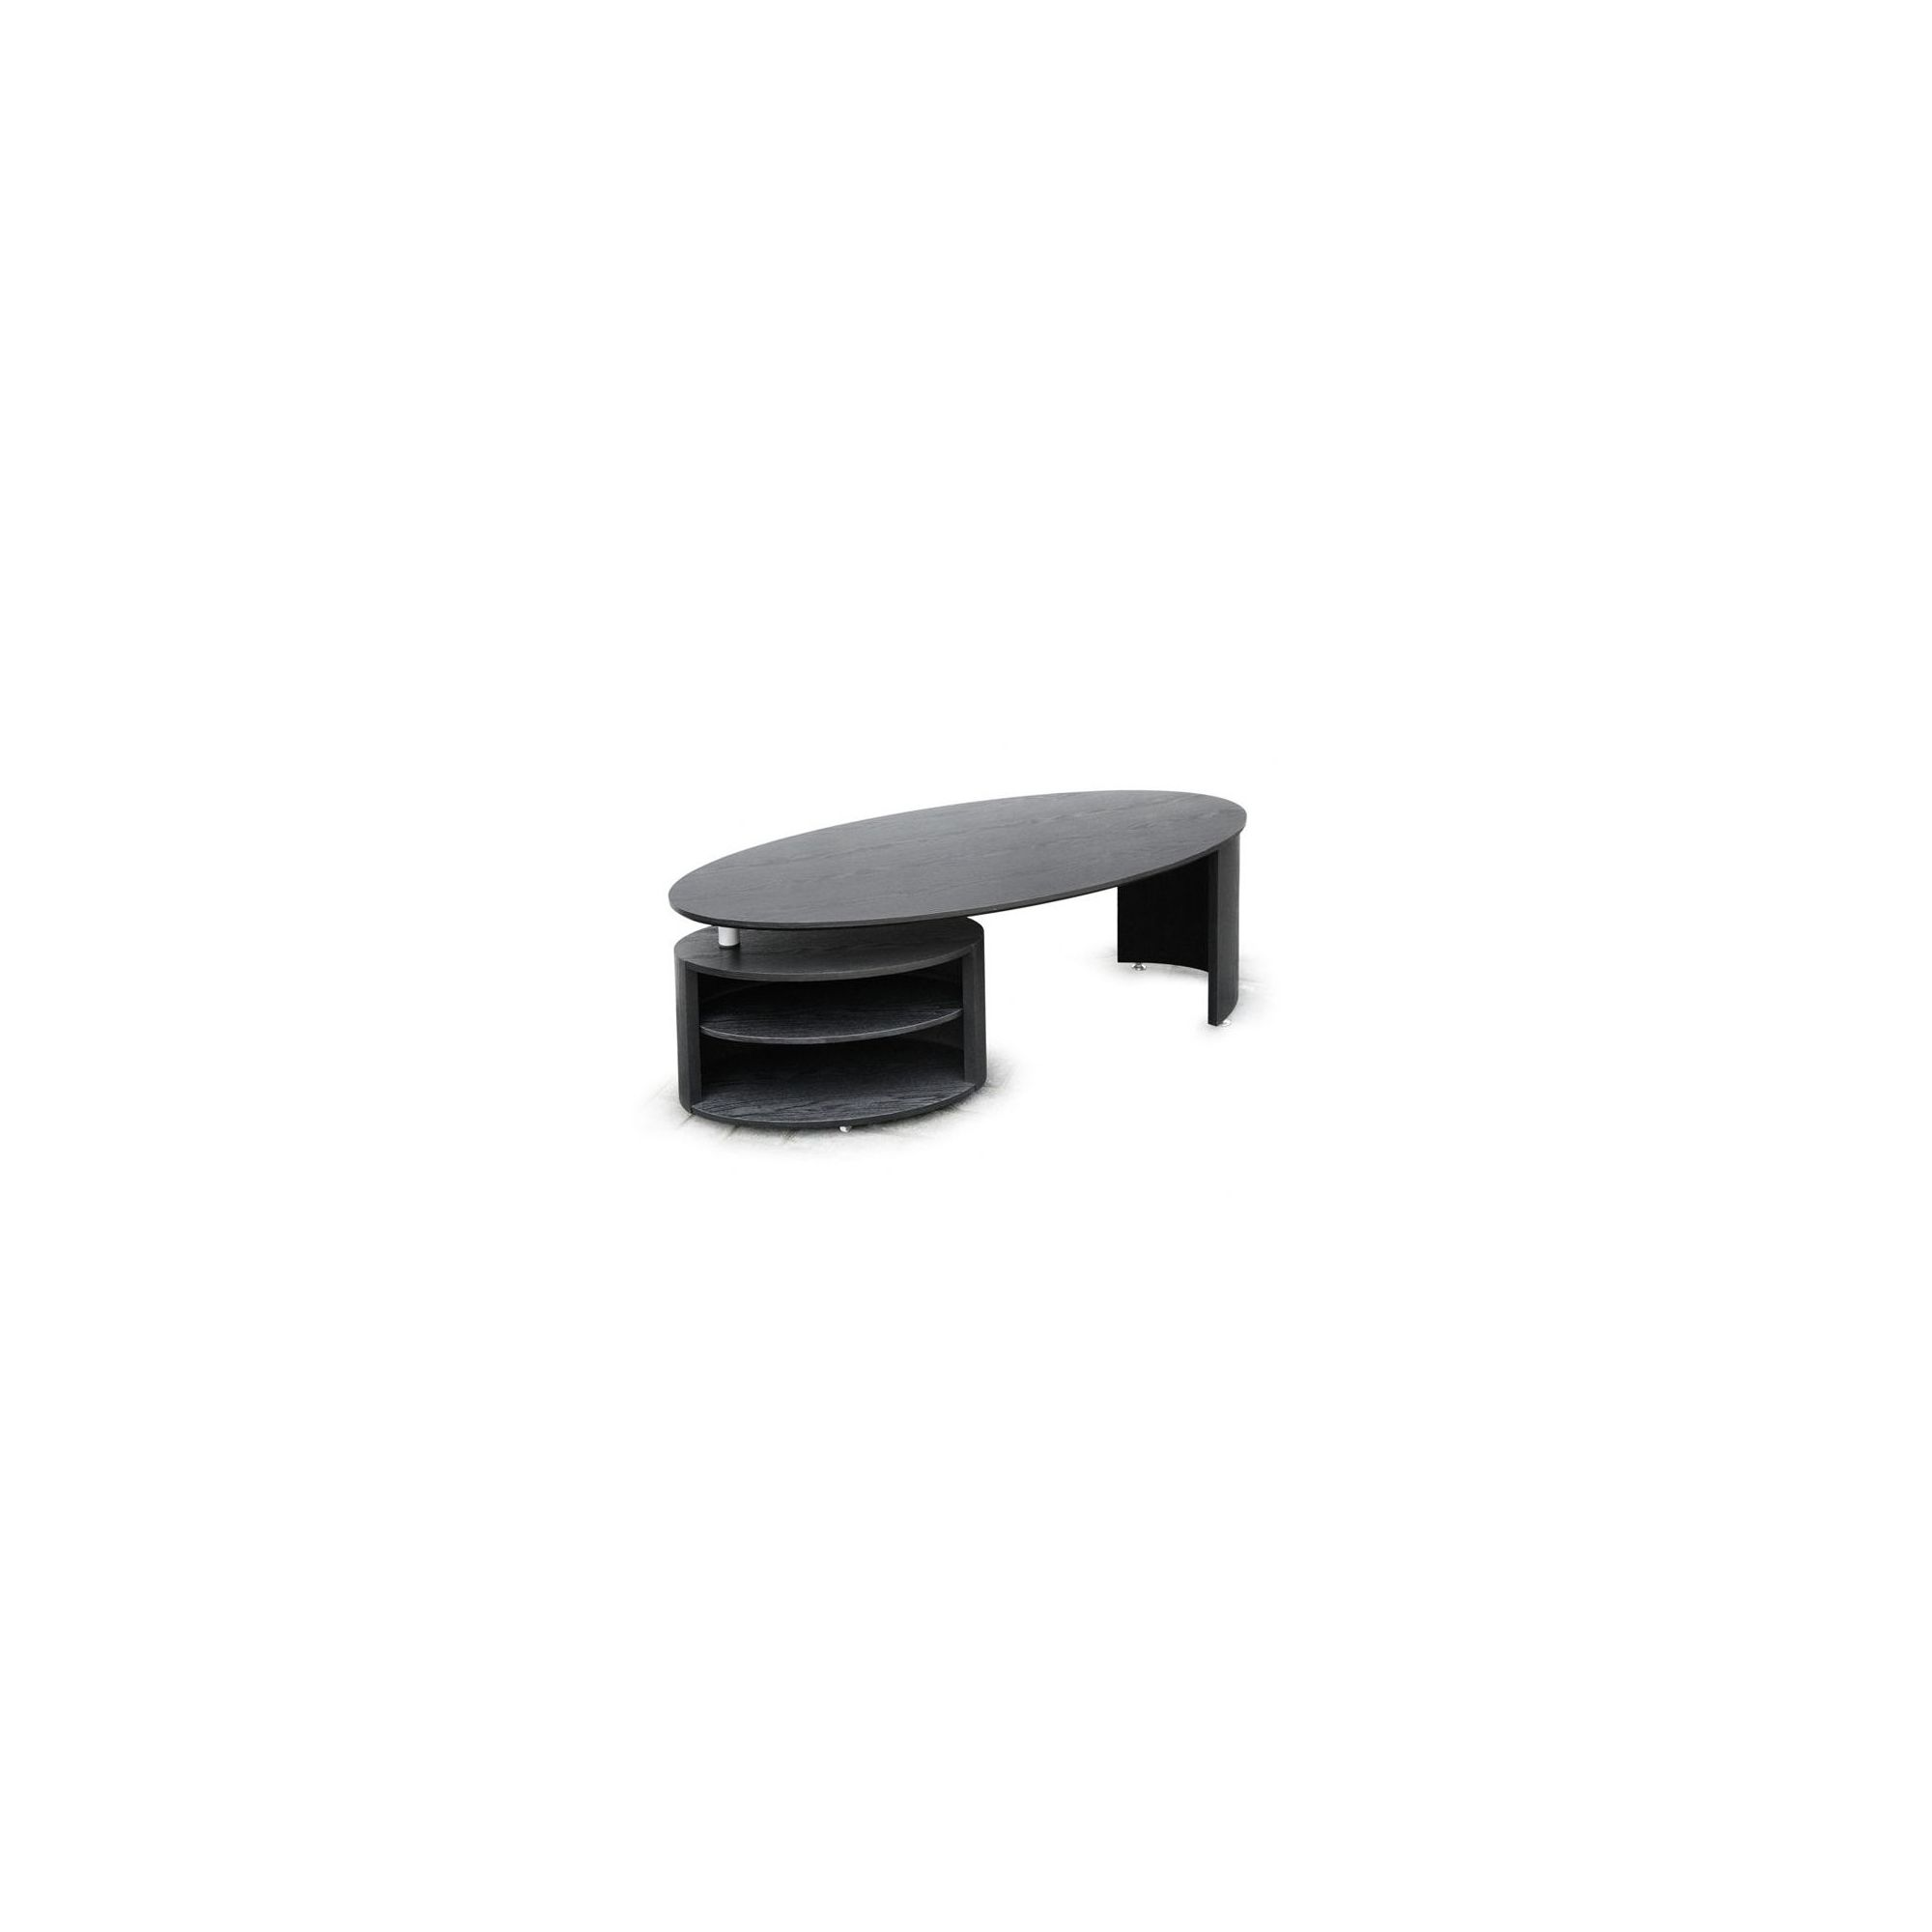 RGE Karl Coffee Table - Lacquer Black at Tesco Direct